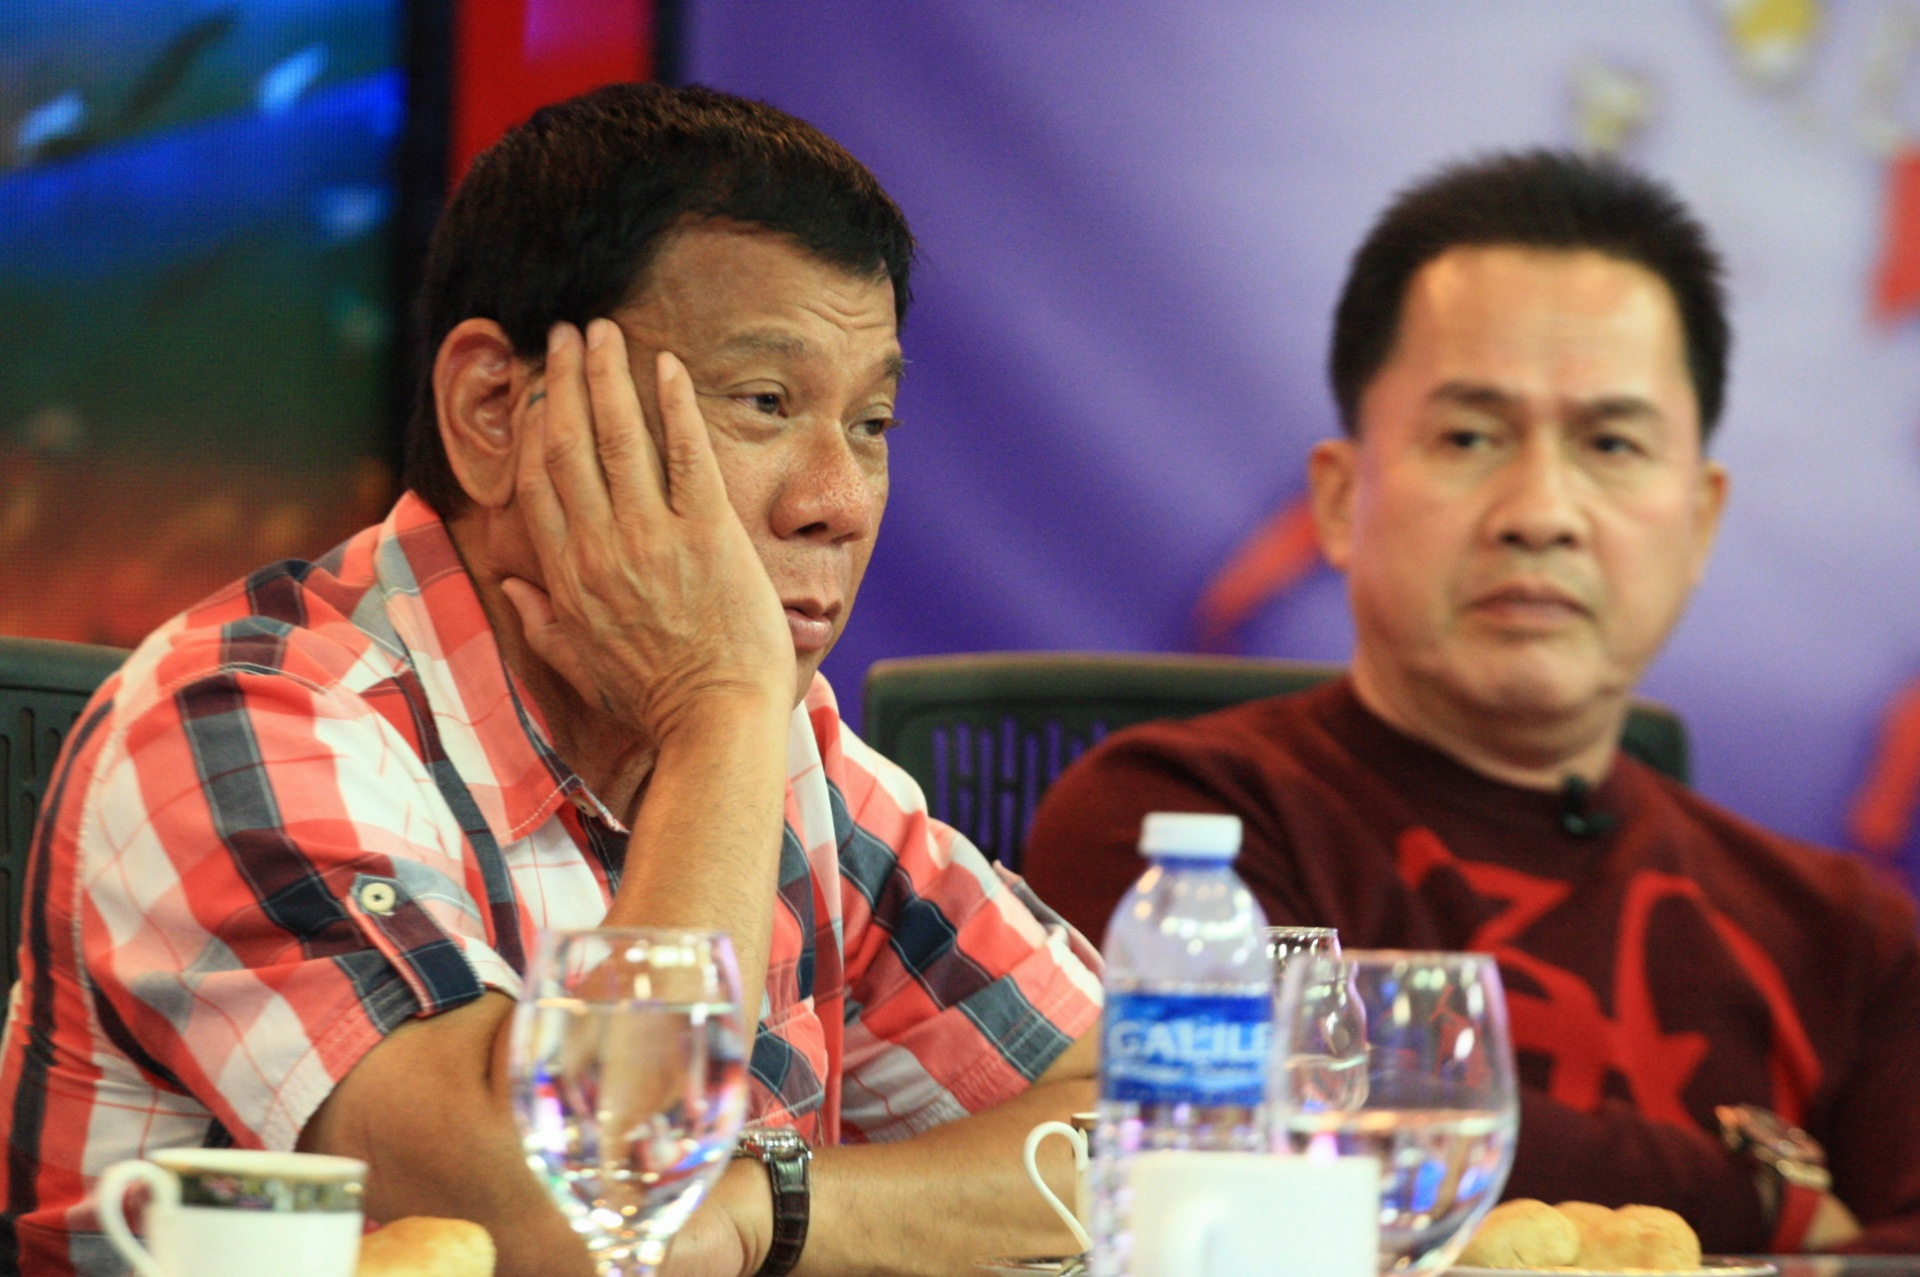 SPAT BREWING? Duterte appears in Pastor Apollo Quiboloy's television show on Election Day, May 9, 2016. Photo by Manman Dejeto/Rappler